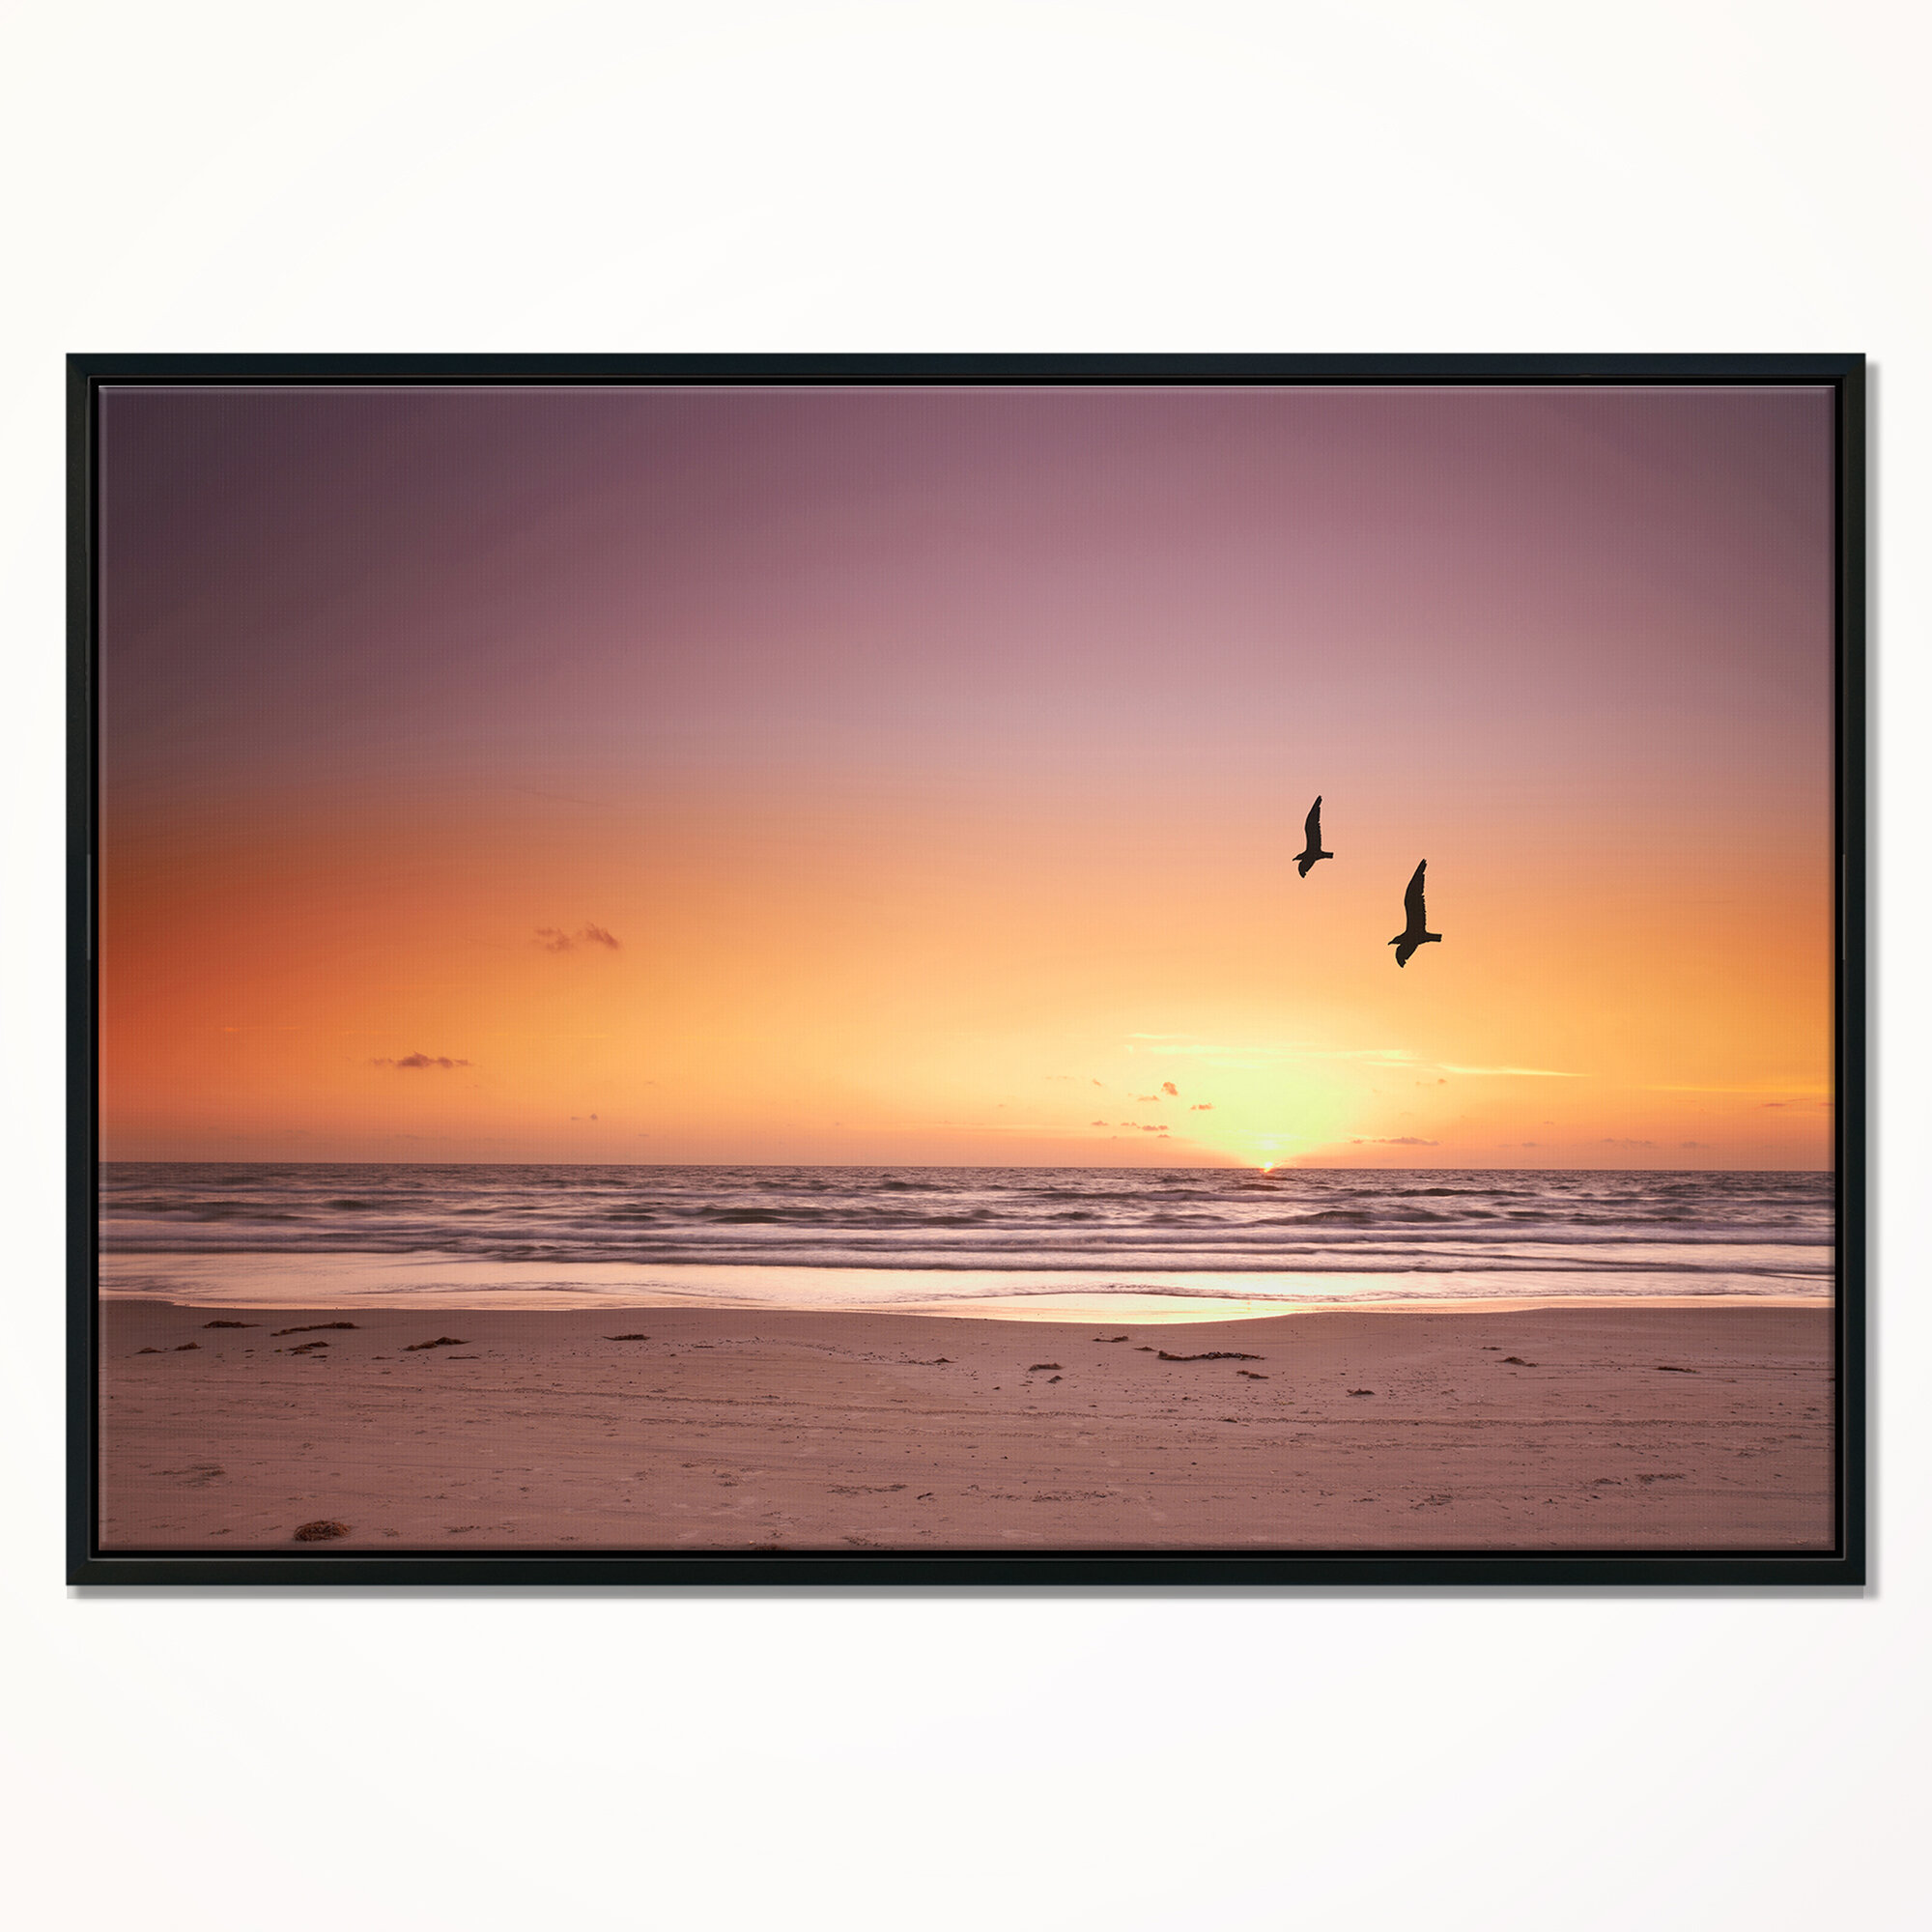 East Urban Home Beach Sunset And Sea Gulls Framed Graphic Art Print On Wrapped Canvas Wayfair